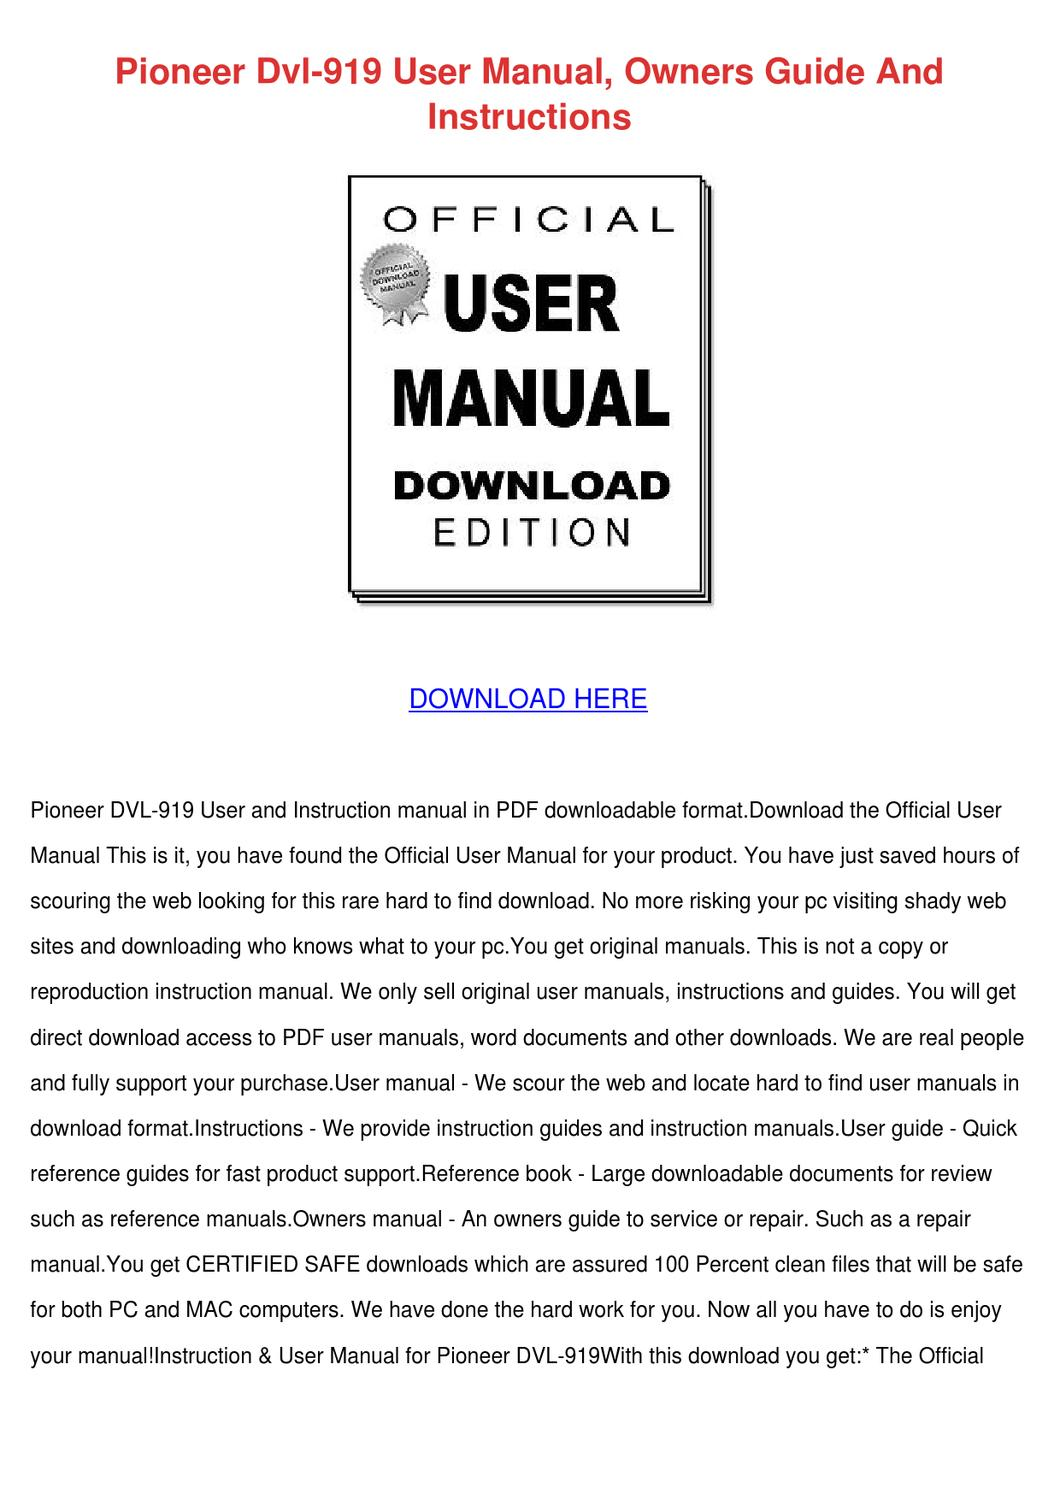 Pioneer Dvl 919 User Manual Owners Guide And by Caryl Wehr - issuu